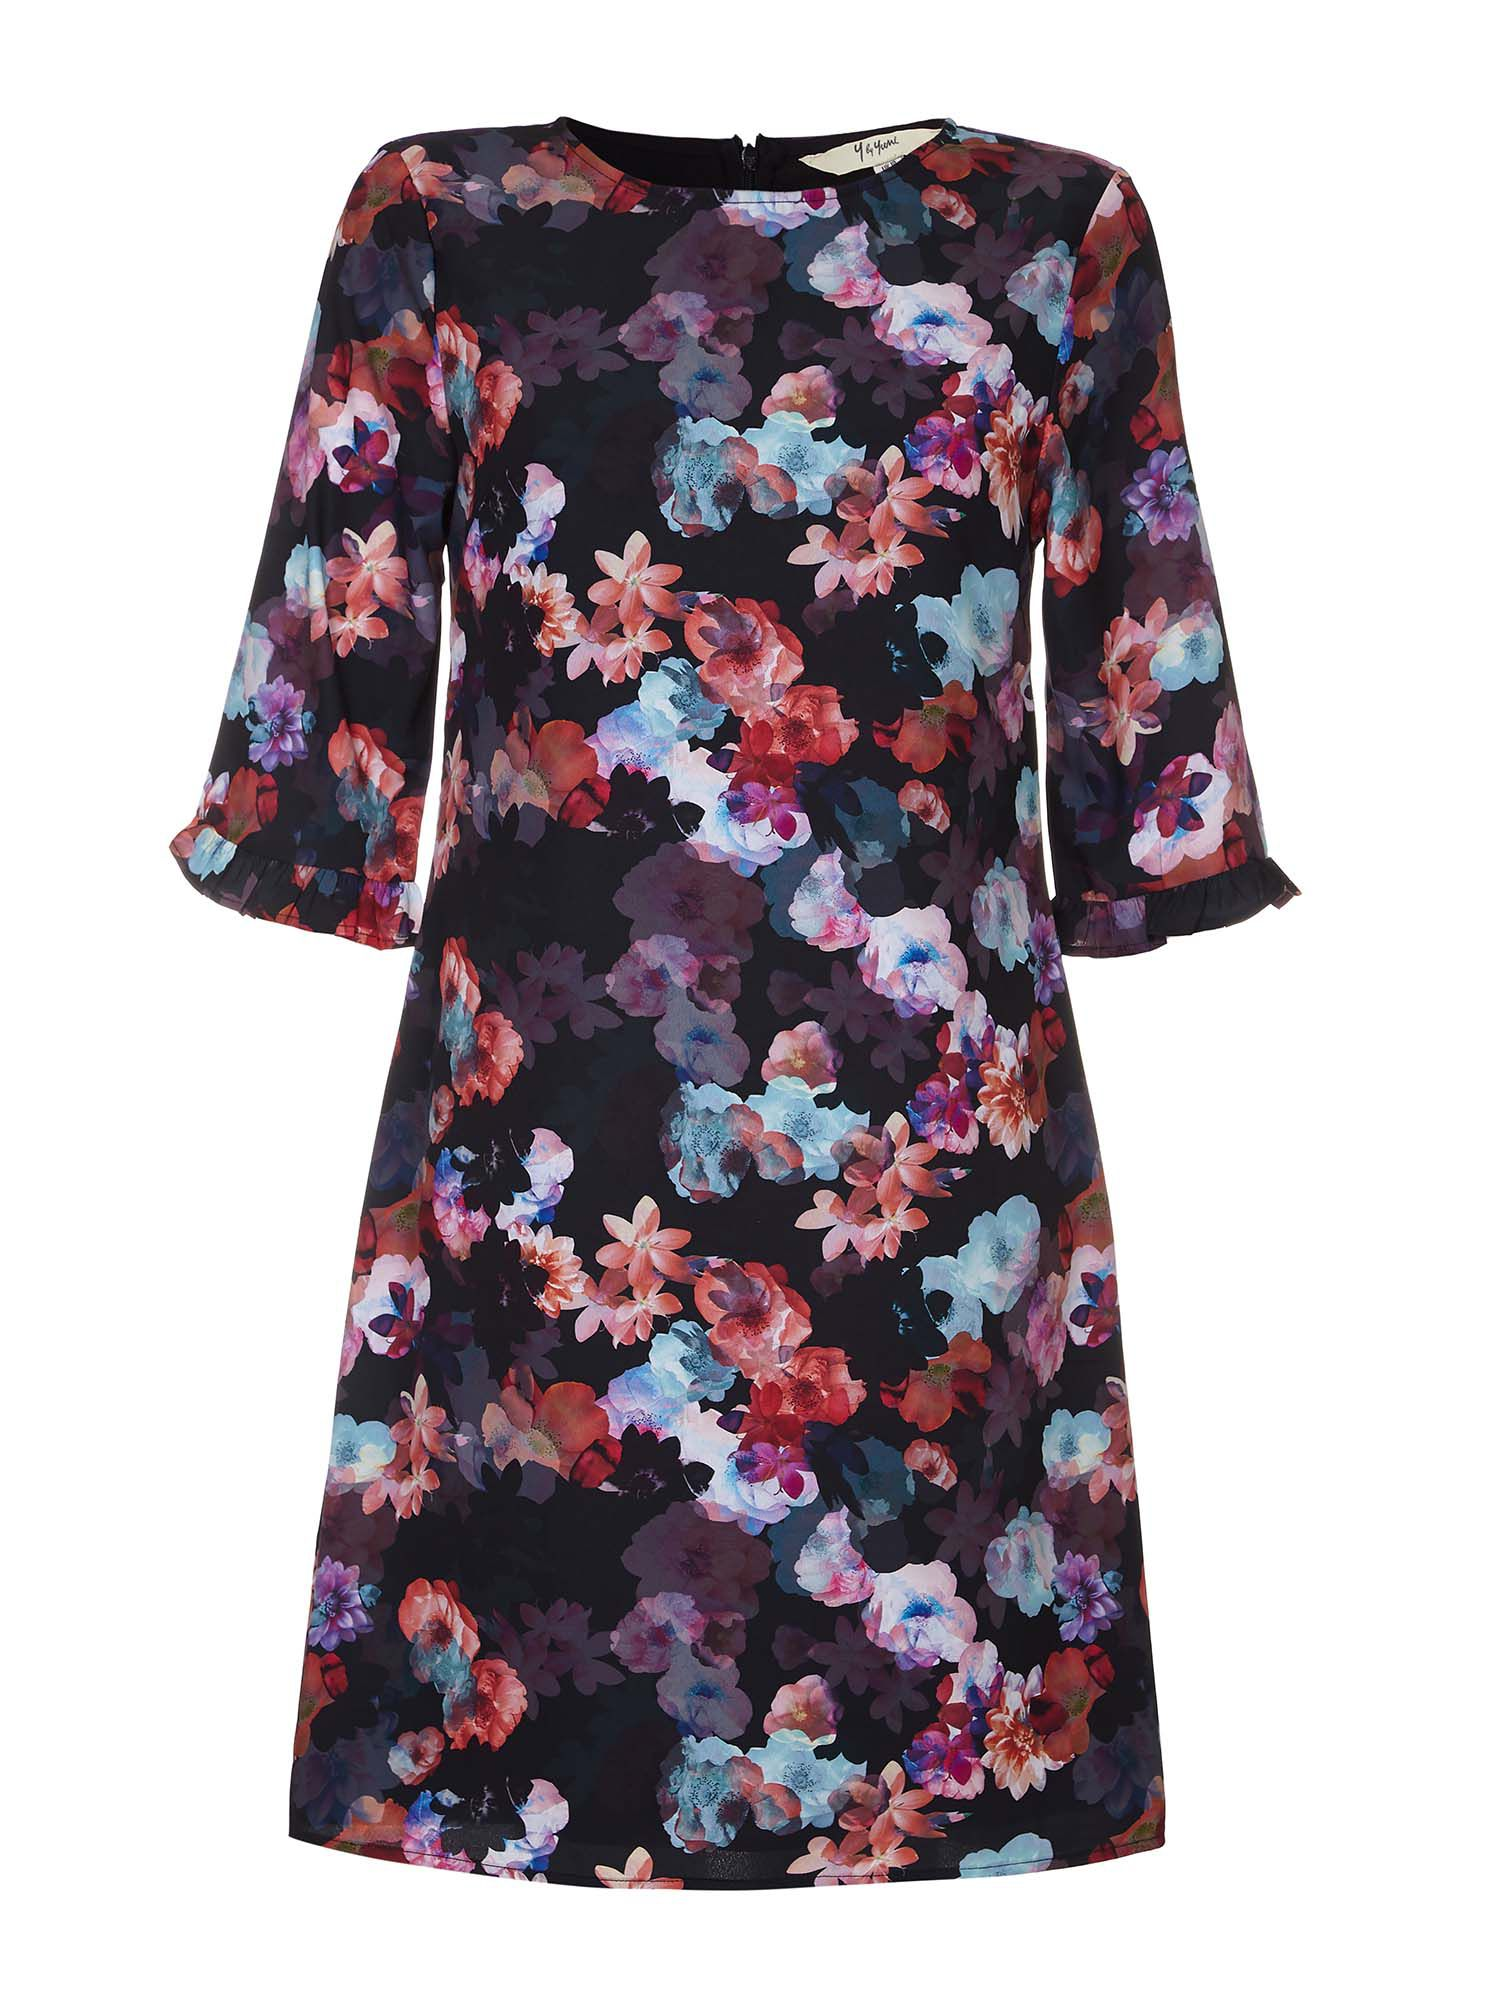 Yumi Floral Tunic Dress with Ruffle Trim, Black